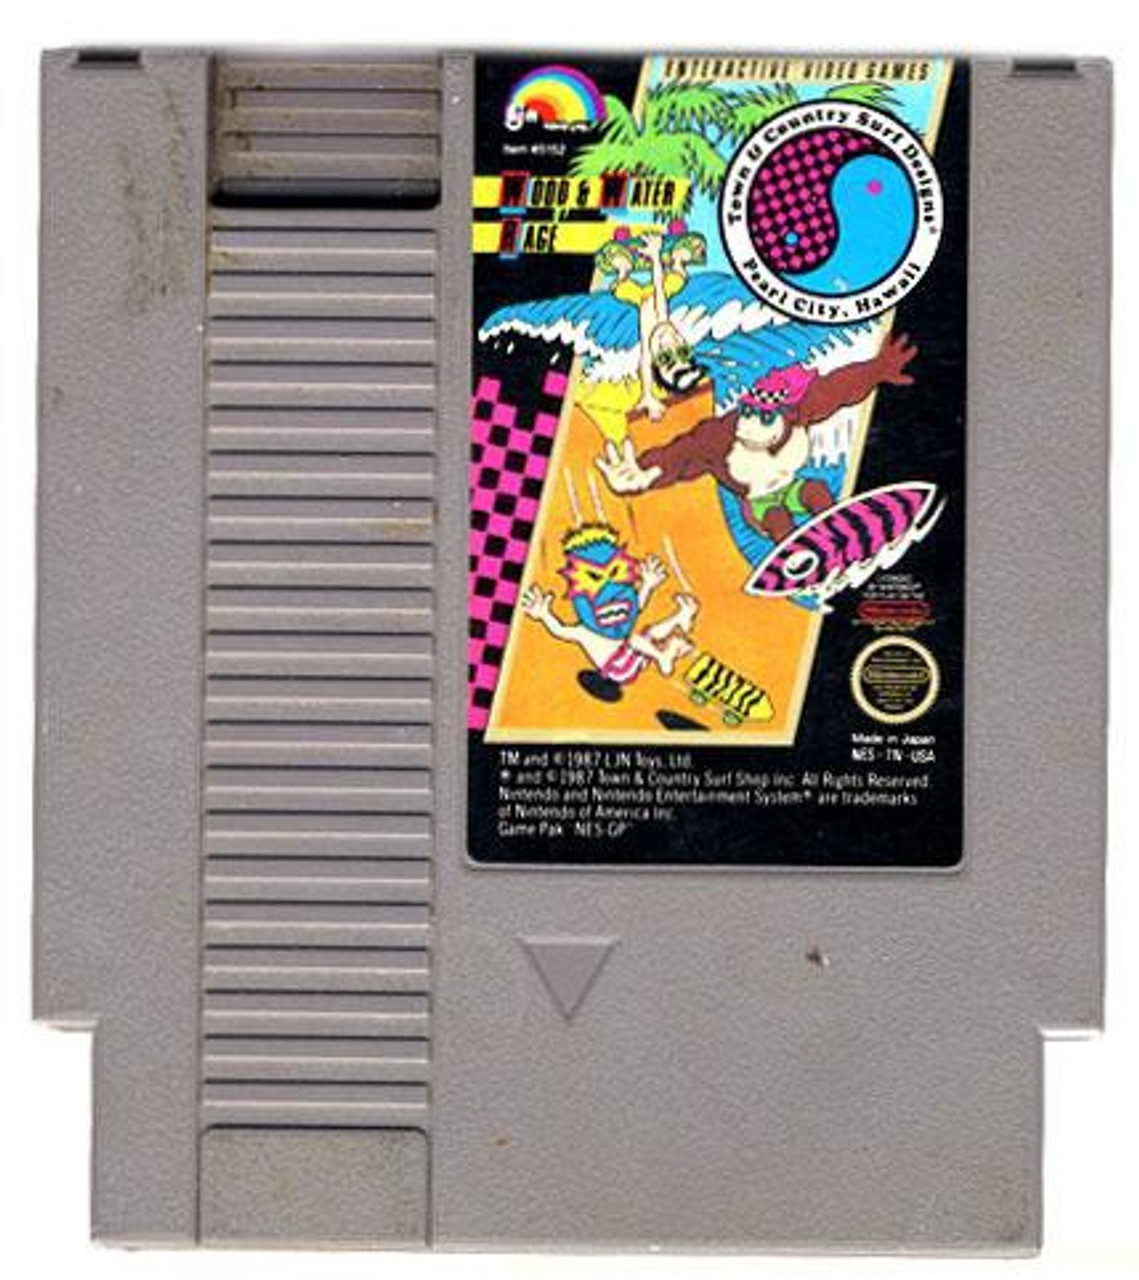 Nintendo NES Town & Country Surf Designs: Wood & Water Rage Video Game Cartridge [Played Condition]